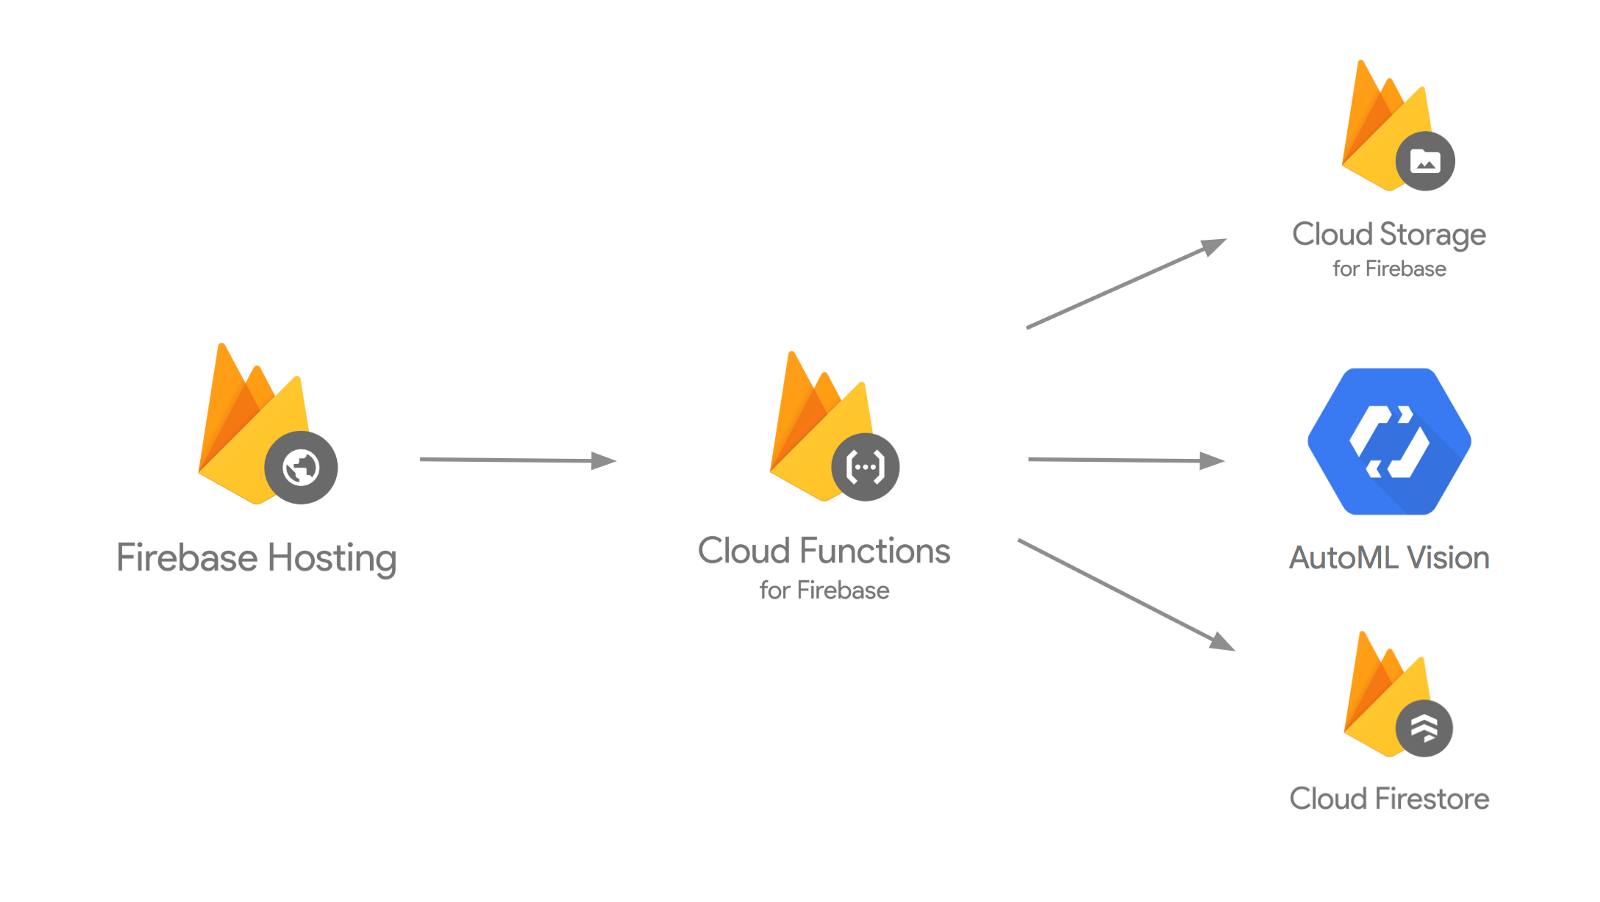 Query a custom AutoML model with Cloud Functions and Firebase - By